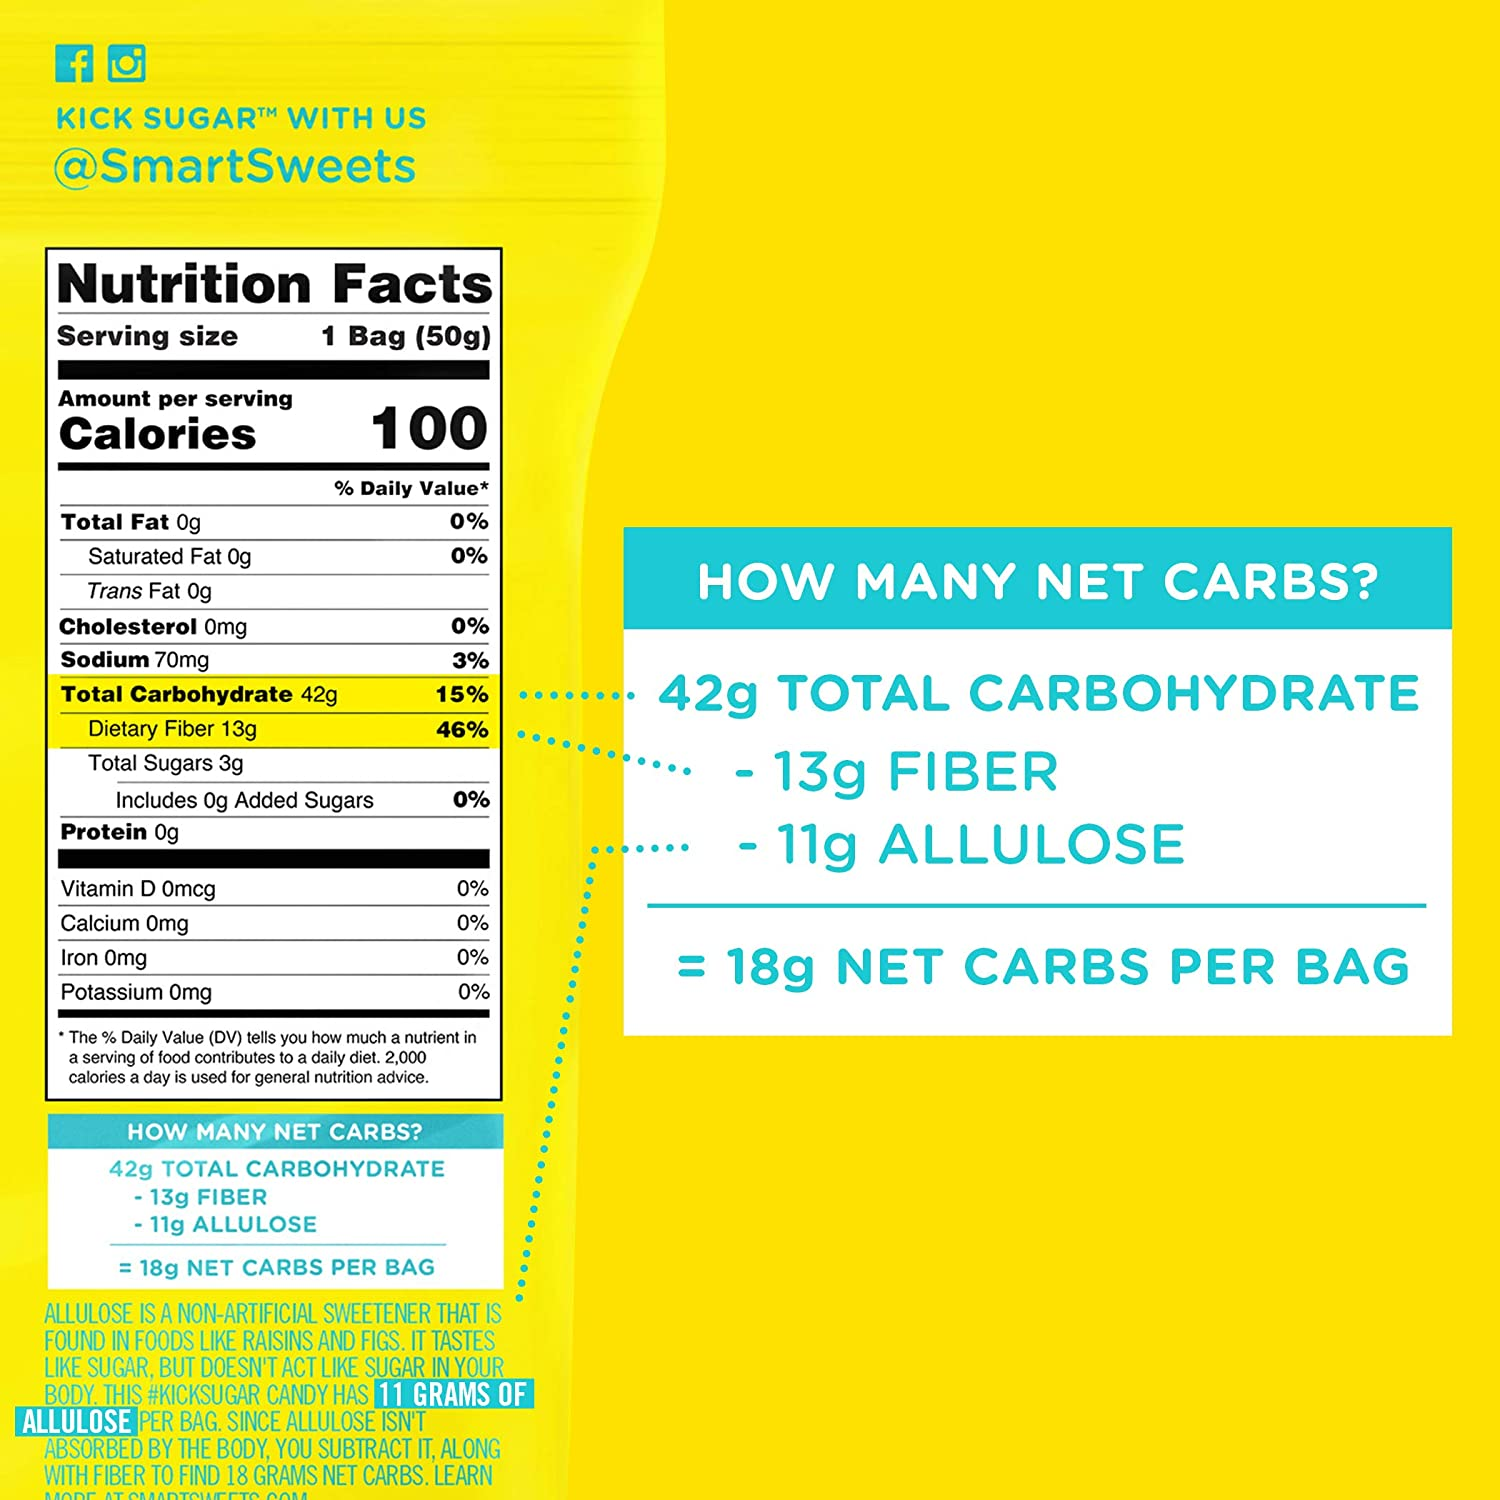 SmartSweets Sour Blast Buddies, Candy with Low Sugar (3g), Low Calorie, Plant-Based, Free From Sugar Alcohols, No Artificial Colors or Sweeteners, 1.8 oz. (Pack of 12) : Grocery & Gourmet Food